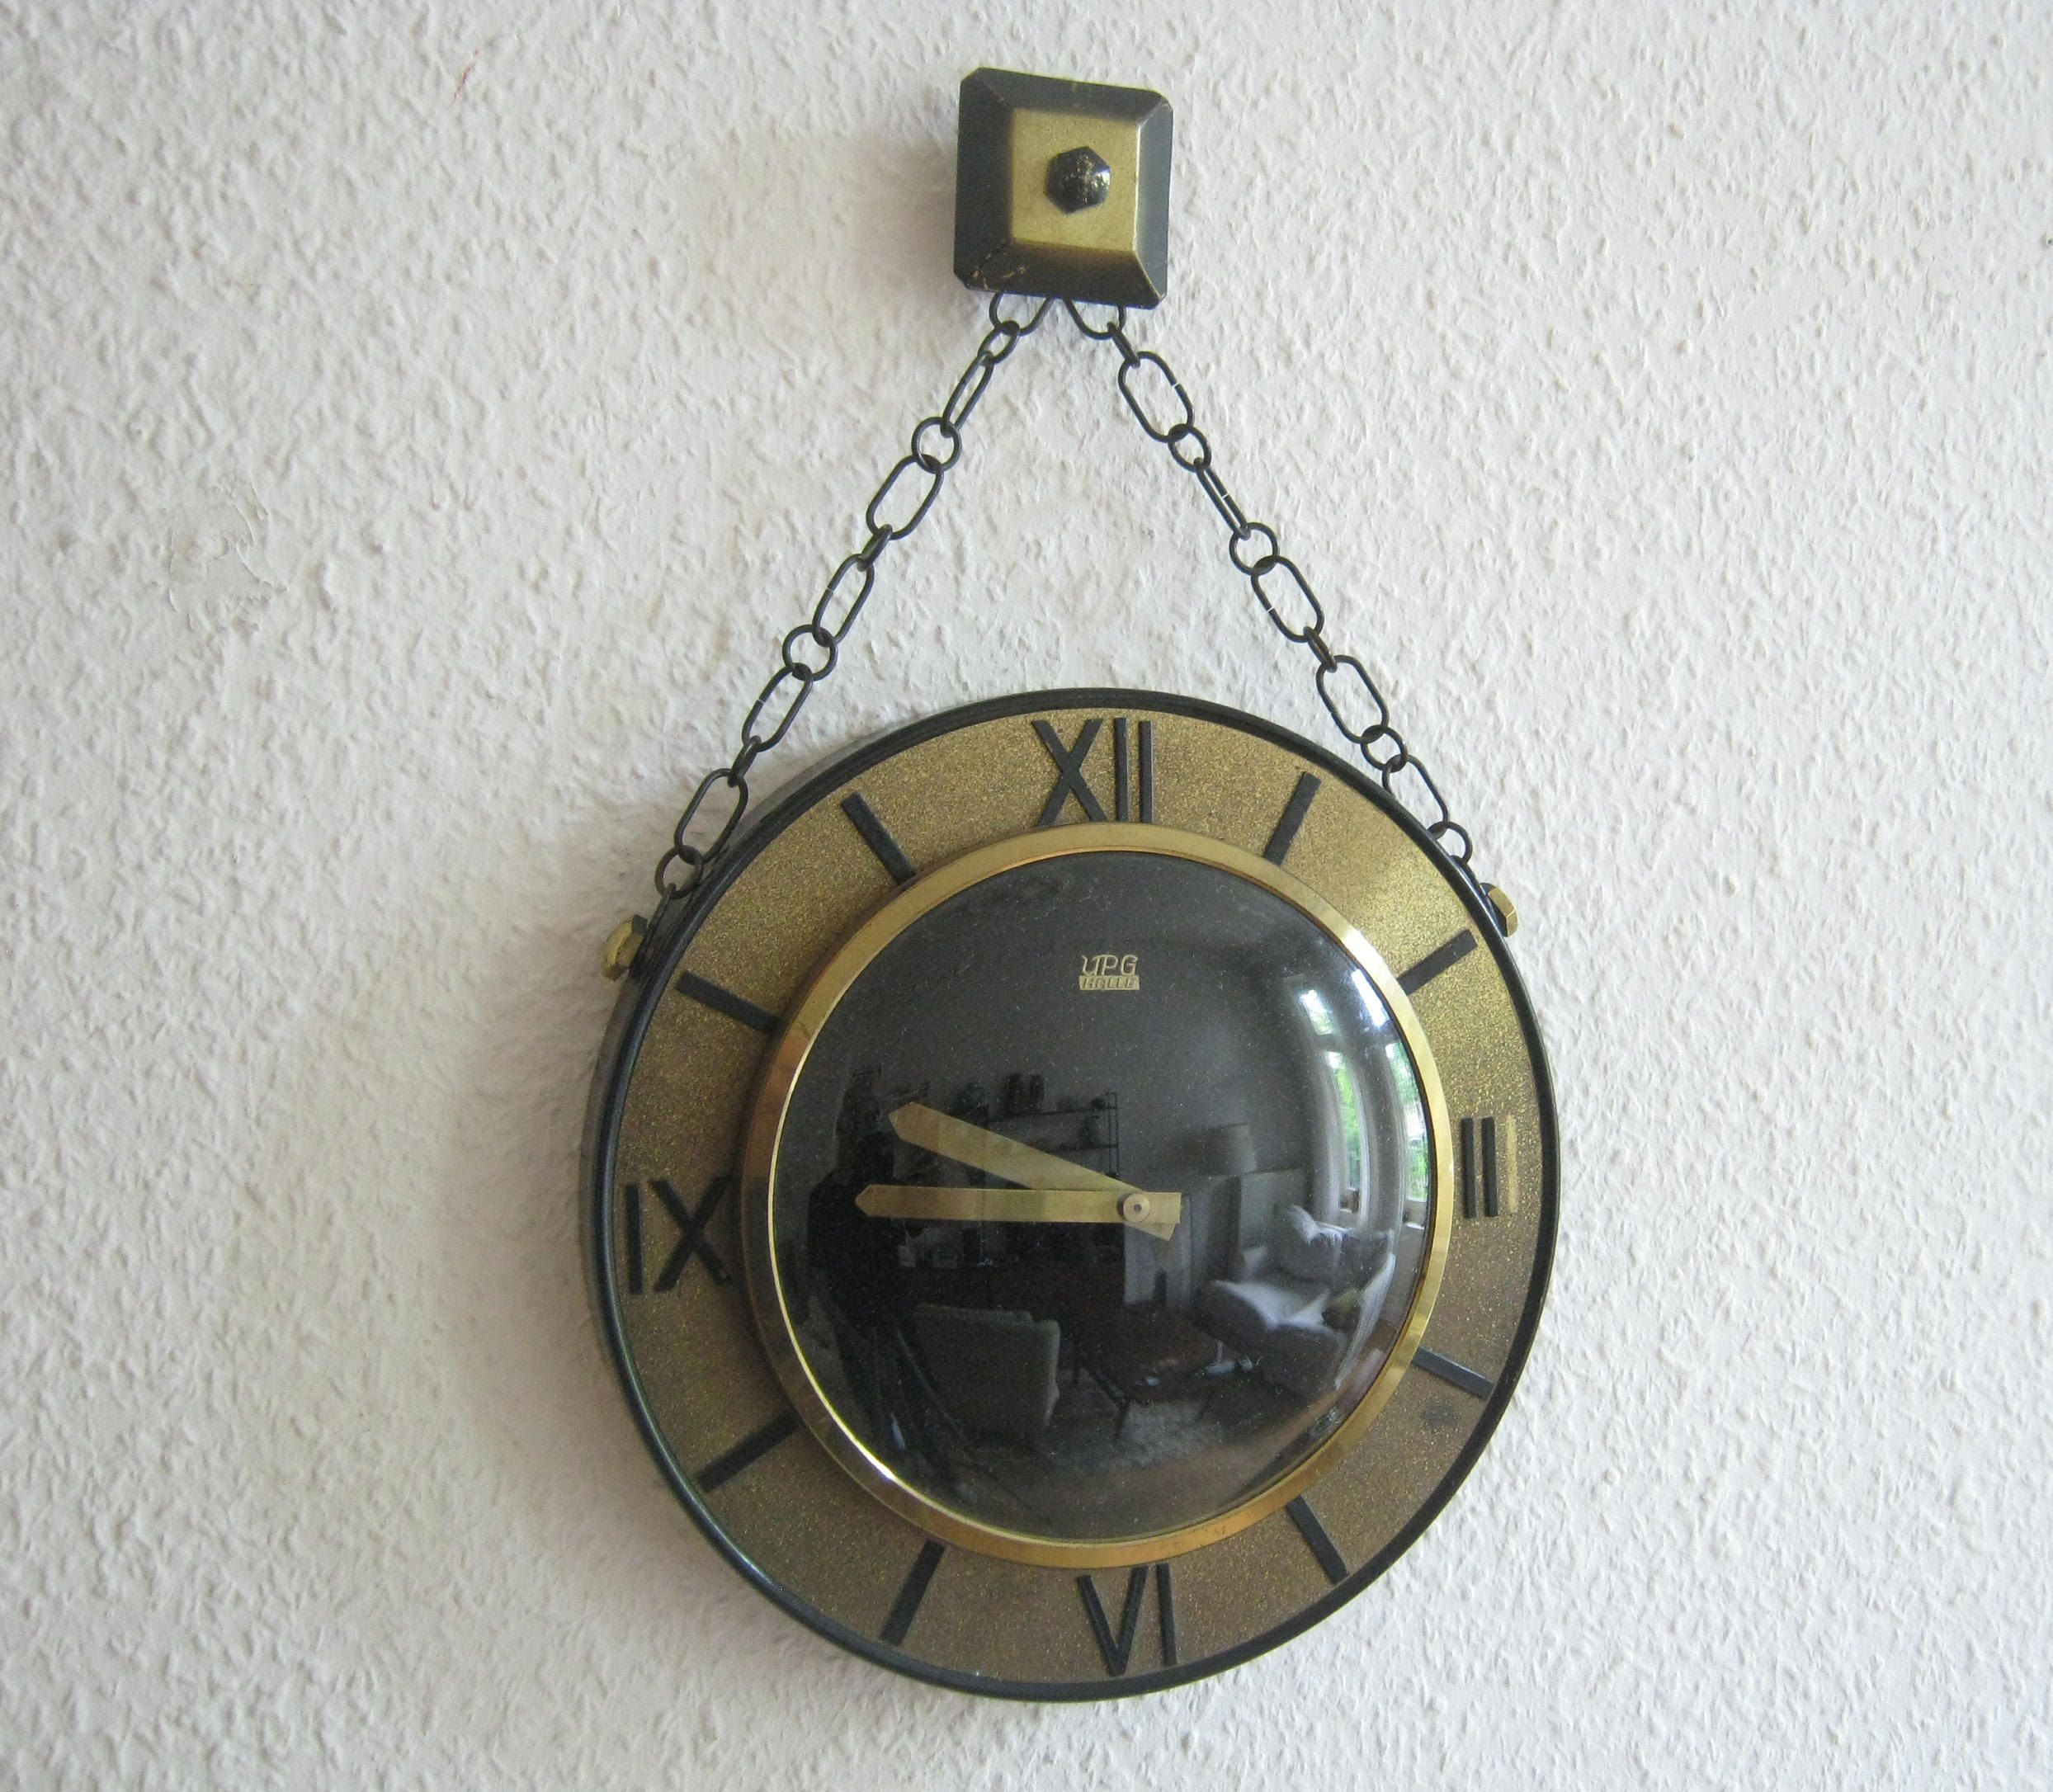 Mechanical Wall Clock Of The Upg Halle From The Gdr Etsy Wanduhr Patina Mechanische Uhren